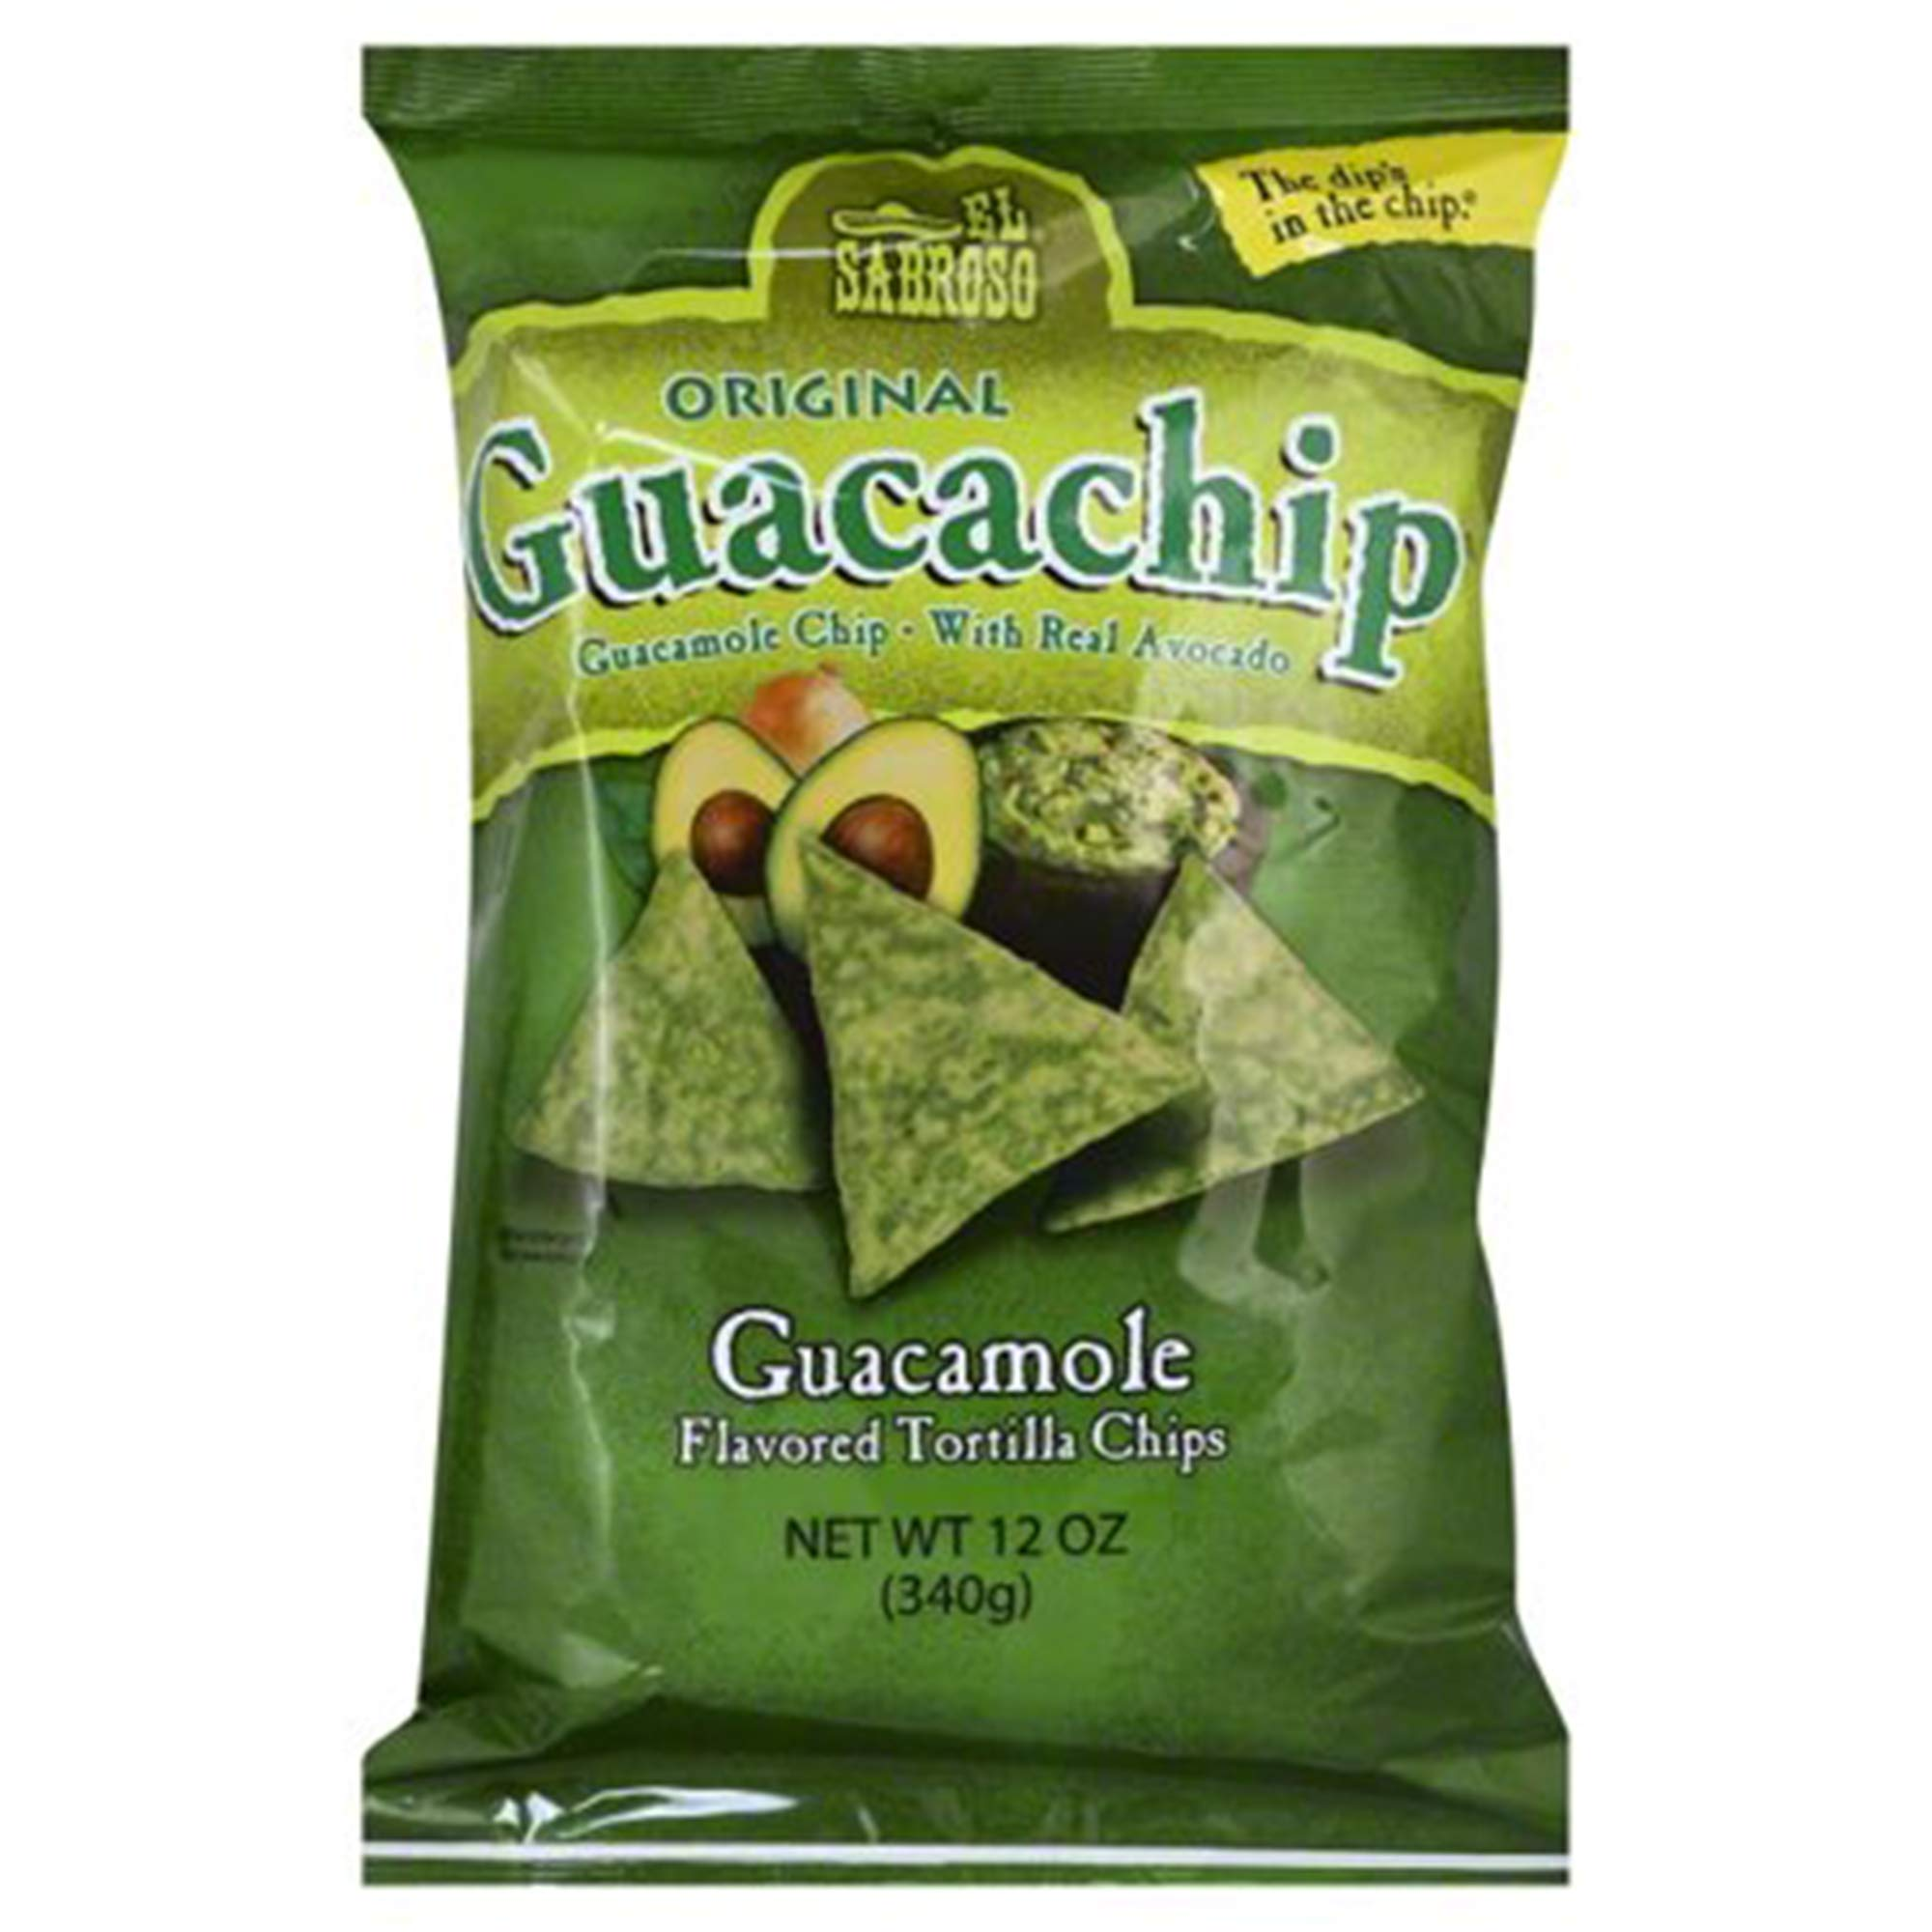 El Sabroso Guacachip, Guacamole Flavored Tortilla Chips, 12-Ounce Package by Snak King